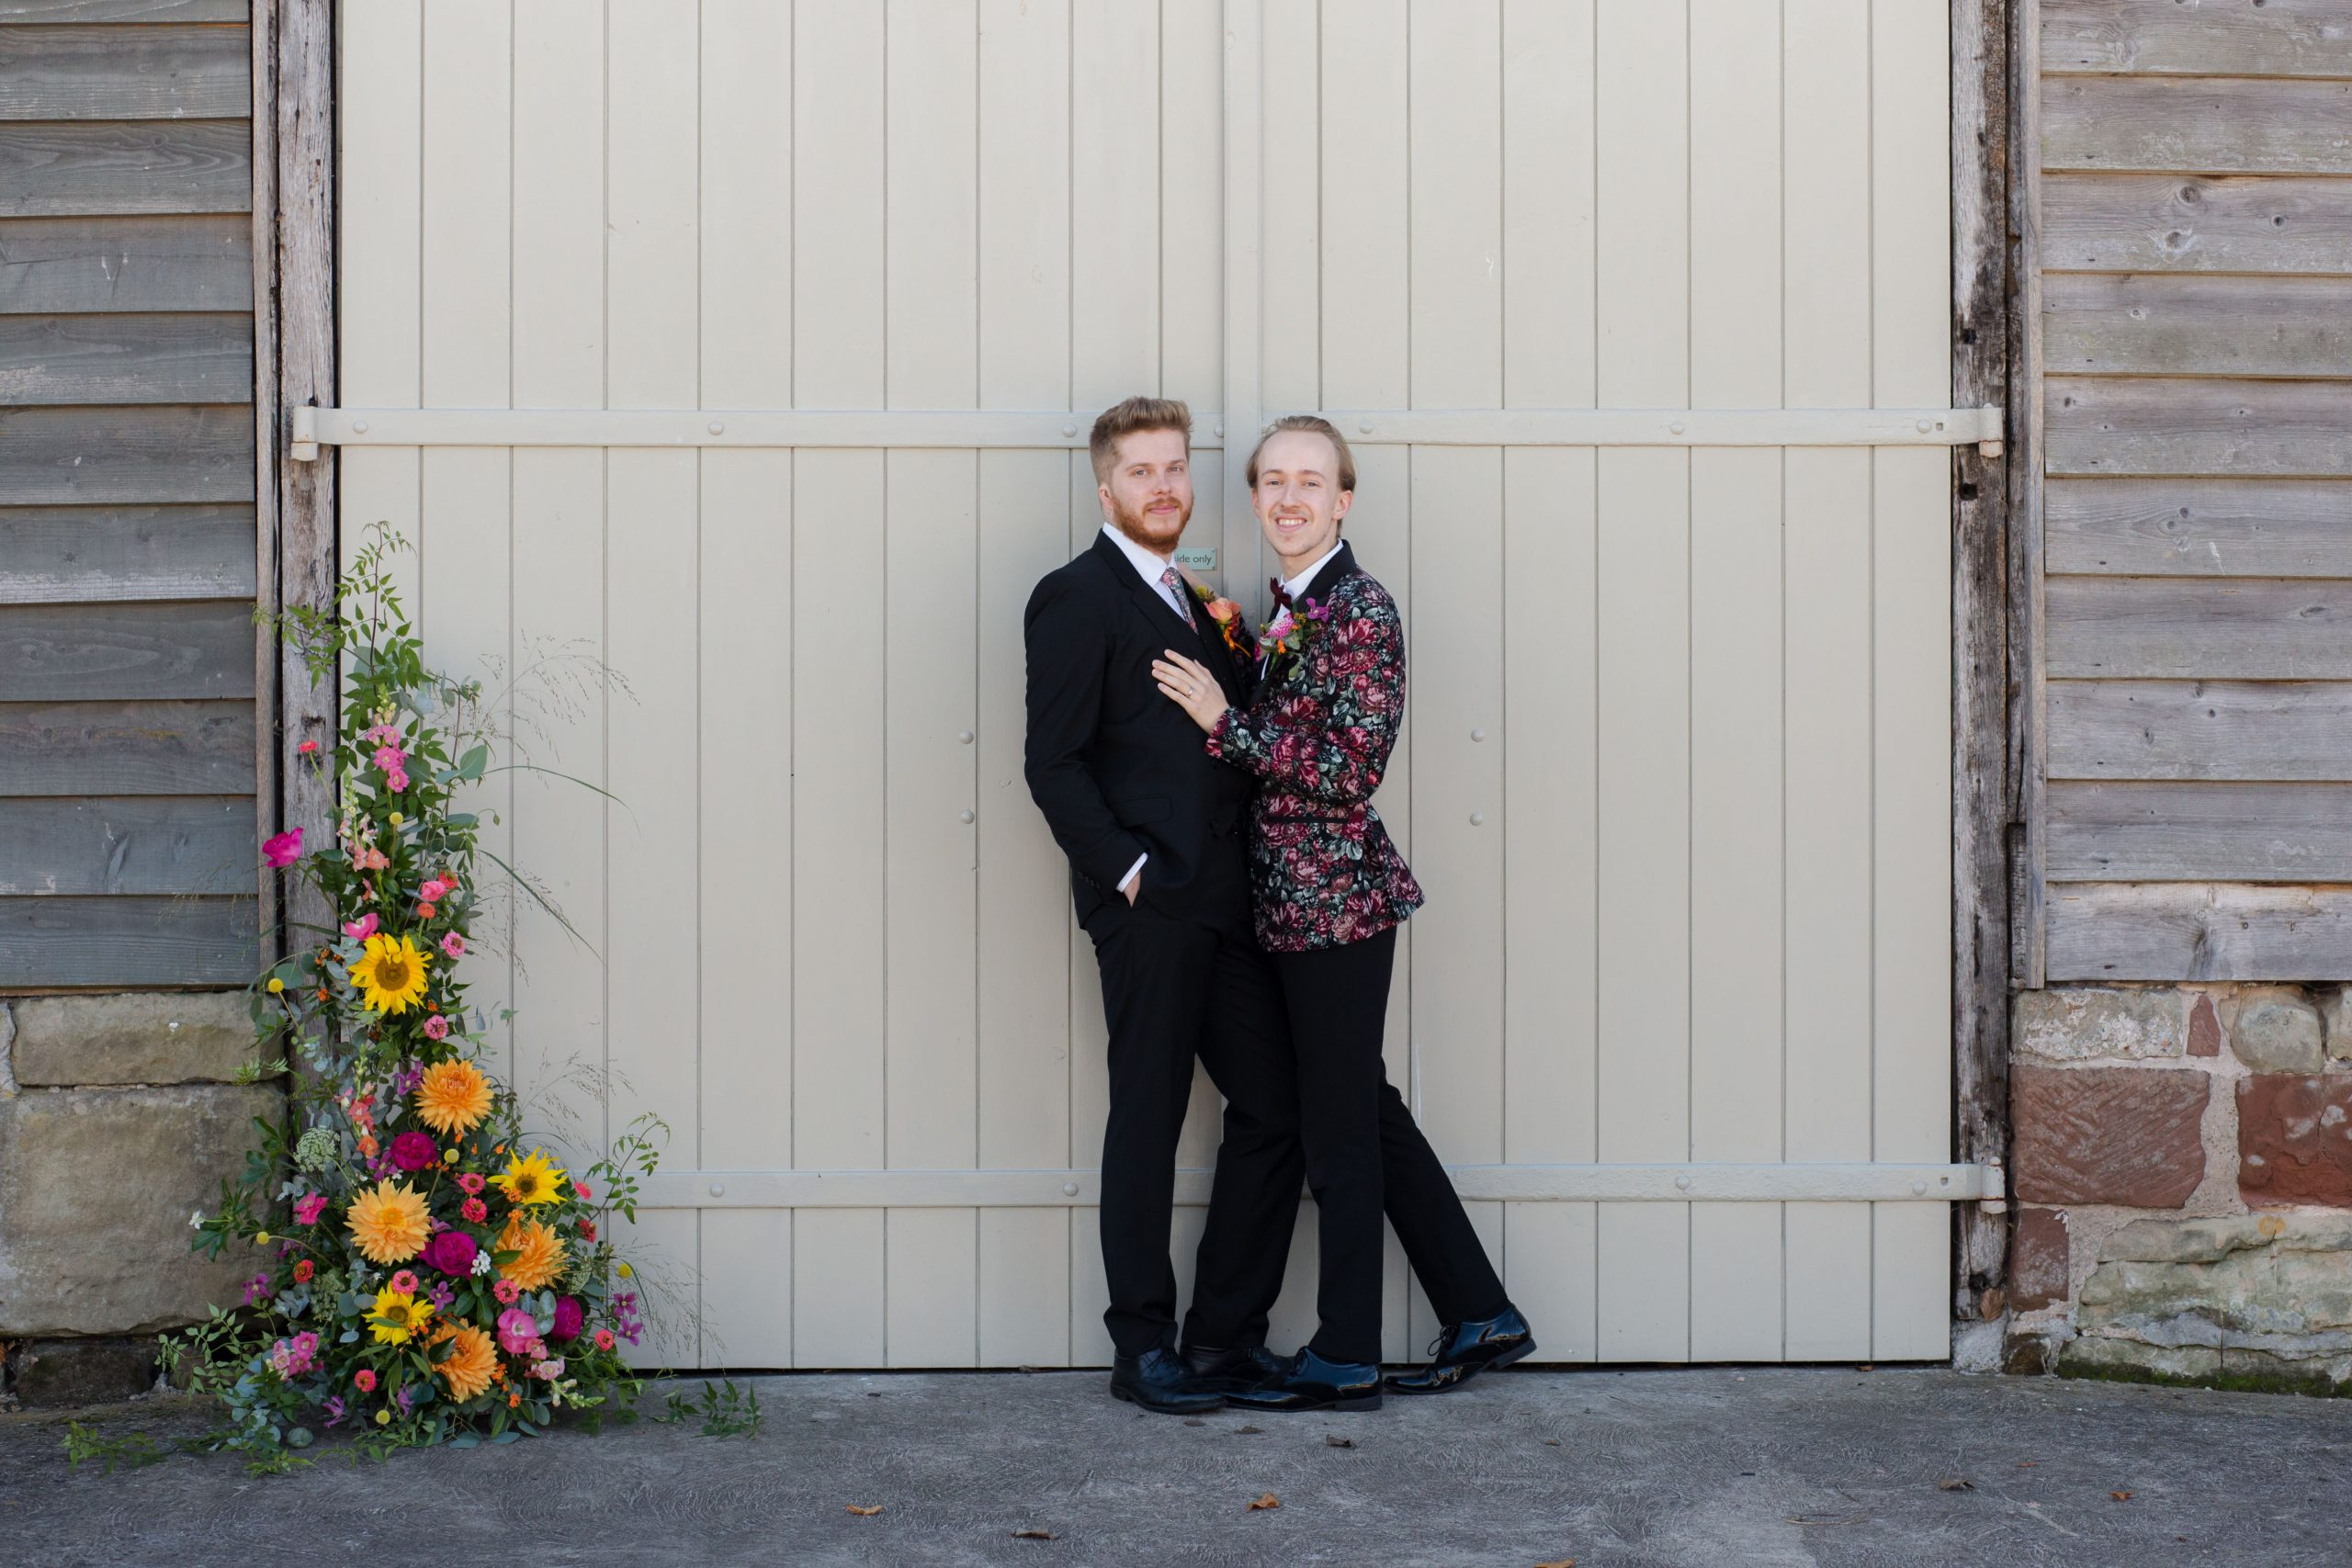 Surprise proposal shoot at Pimhill Barn